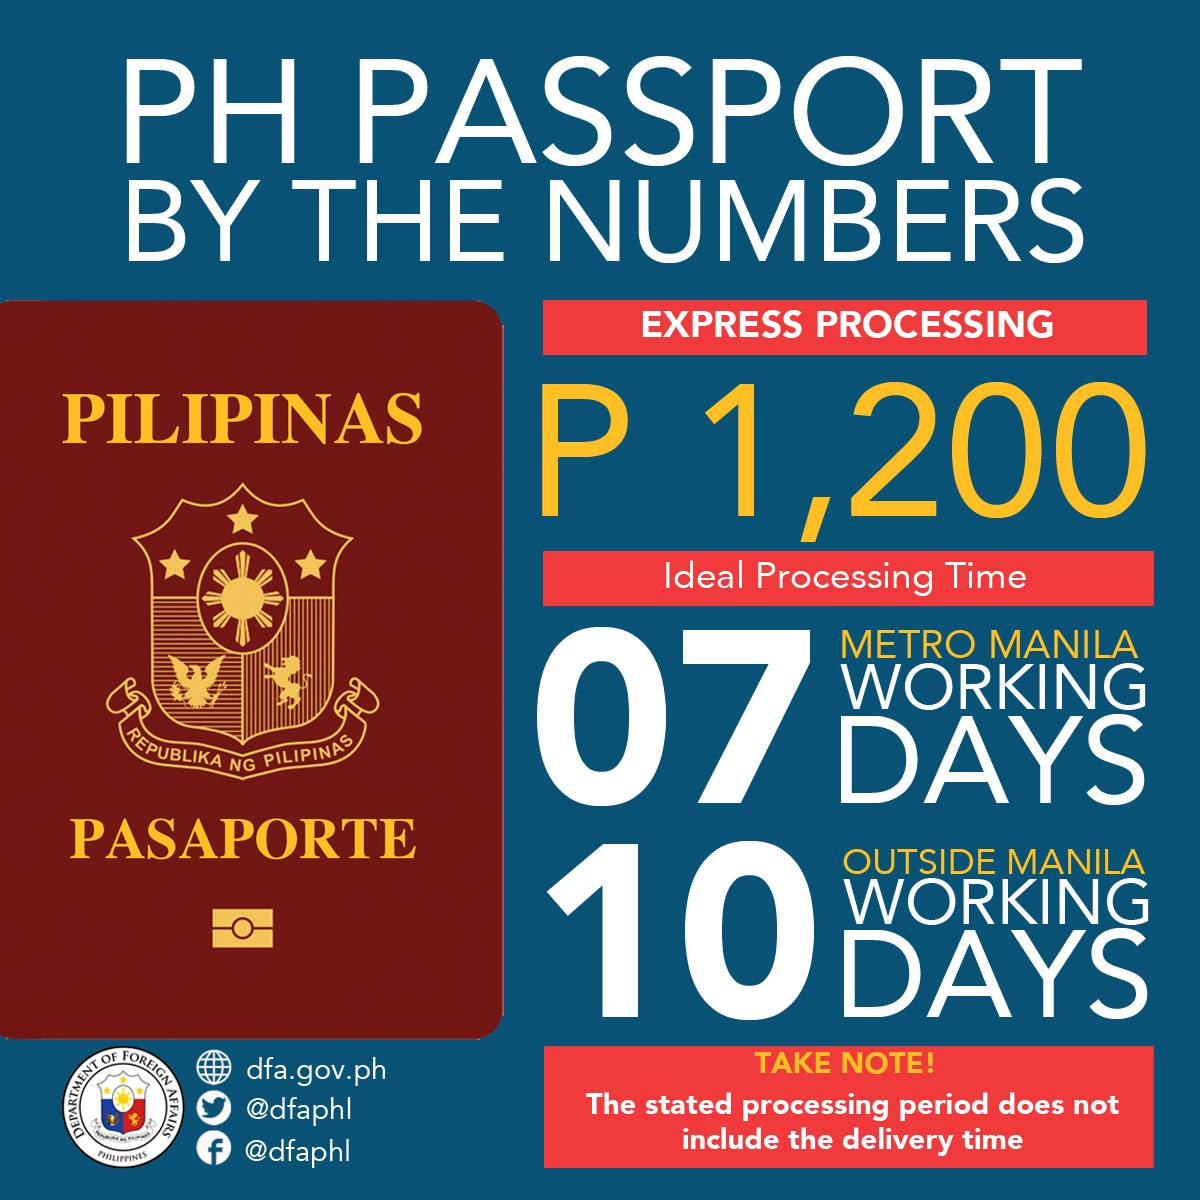 Passport processing guide and list of dfa branches nationwide regular processing costs p950 while express processing costs p1200 malvernweather Choice Image